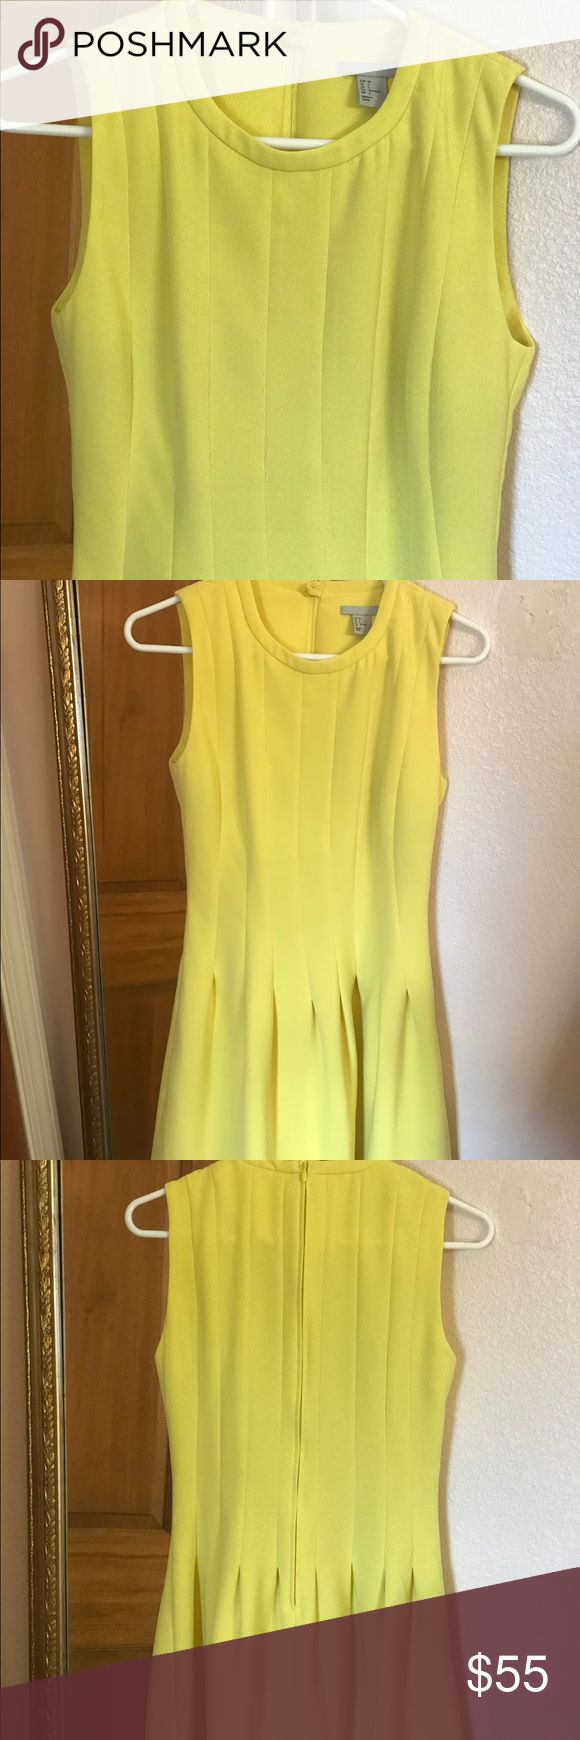 H&M Yellow Cocktail Dress Yellow is the it color this summer. This little cocktail dress is dressy enough for work and drinks after. Size 6 - fits someone with a 32 to 34 inch bust. The color is super flattering. Worn once and is in like new condition. Make me an offer! H&M Dresses